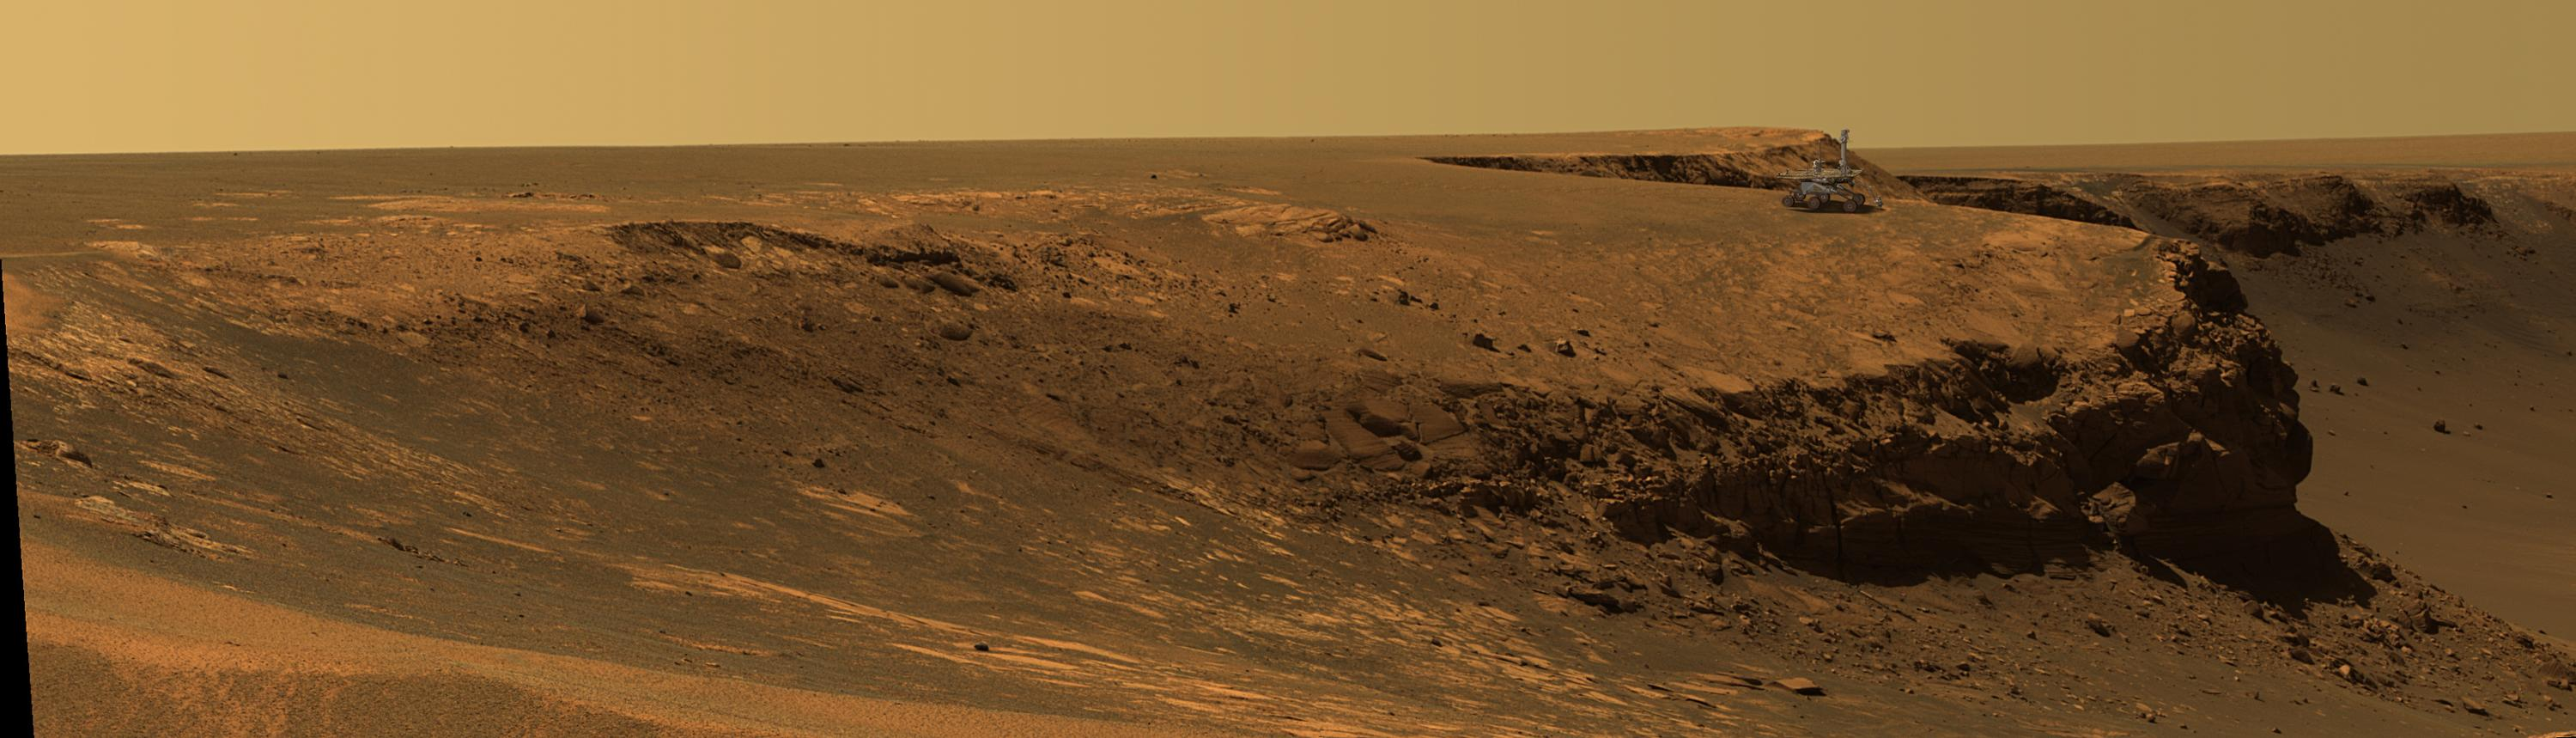 Mars Exploration Rover Mission Special Effects Opportunity